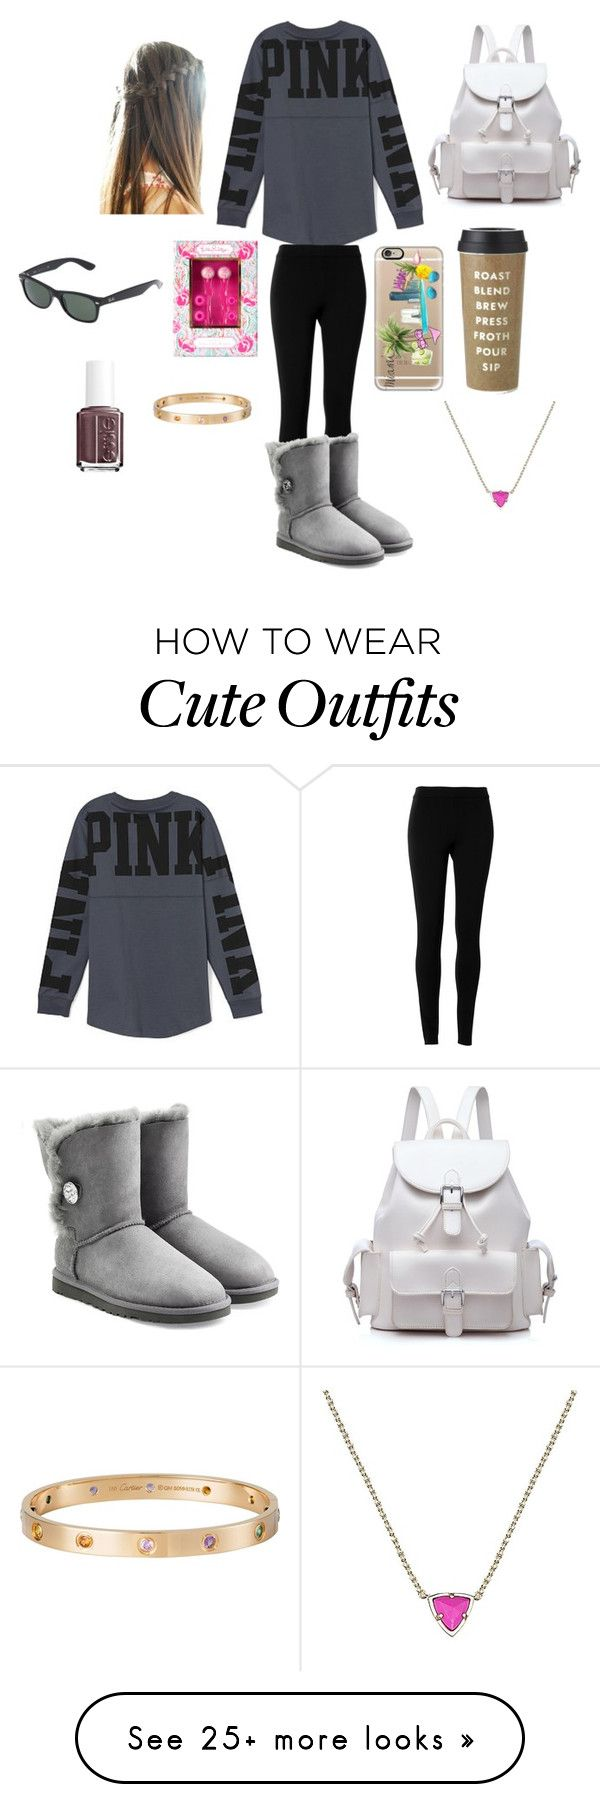 """""""Nice casual day in college outfit"""" by ainsley15-1 on Polyvore featuring Victoria's Secret, Max Studio, UGG Australia, Casetify, Lilly Pulitzer, Kate Spade, Ray-Ban, Kendra Scott, Cartier and Essie"""